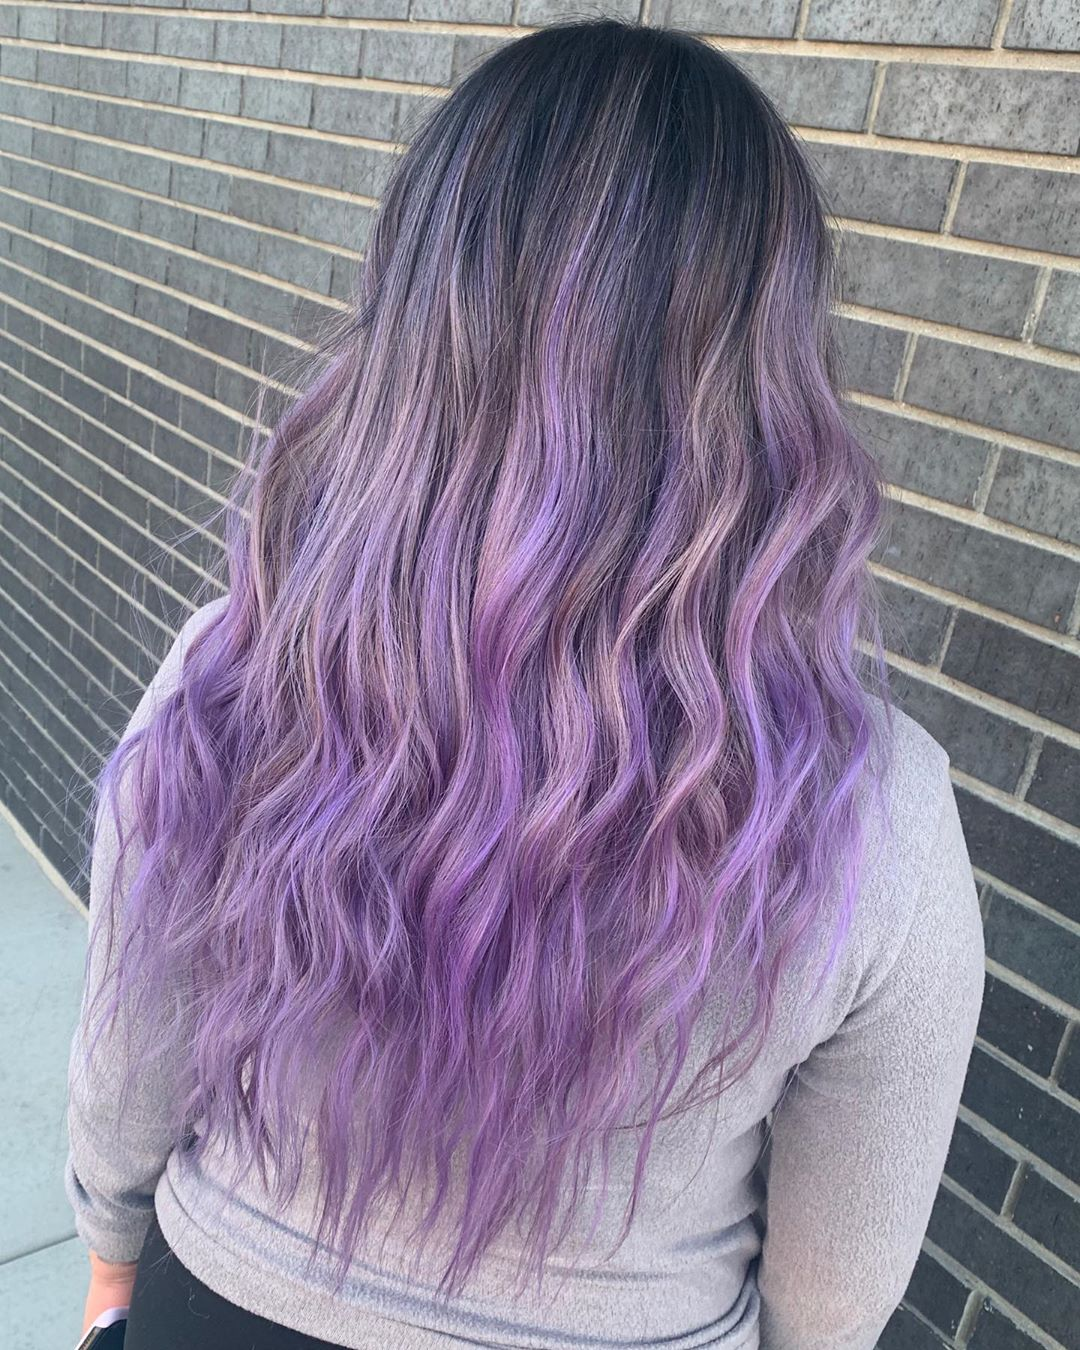 Stunning image of woman with lavender hair